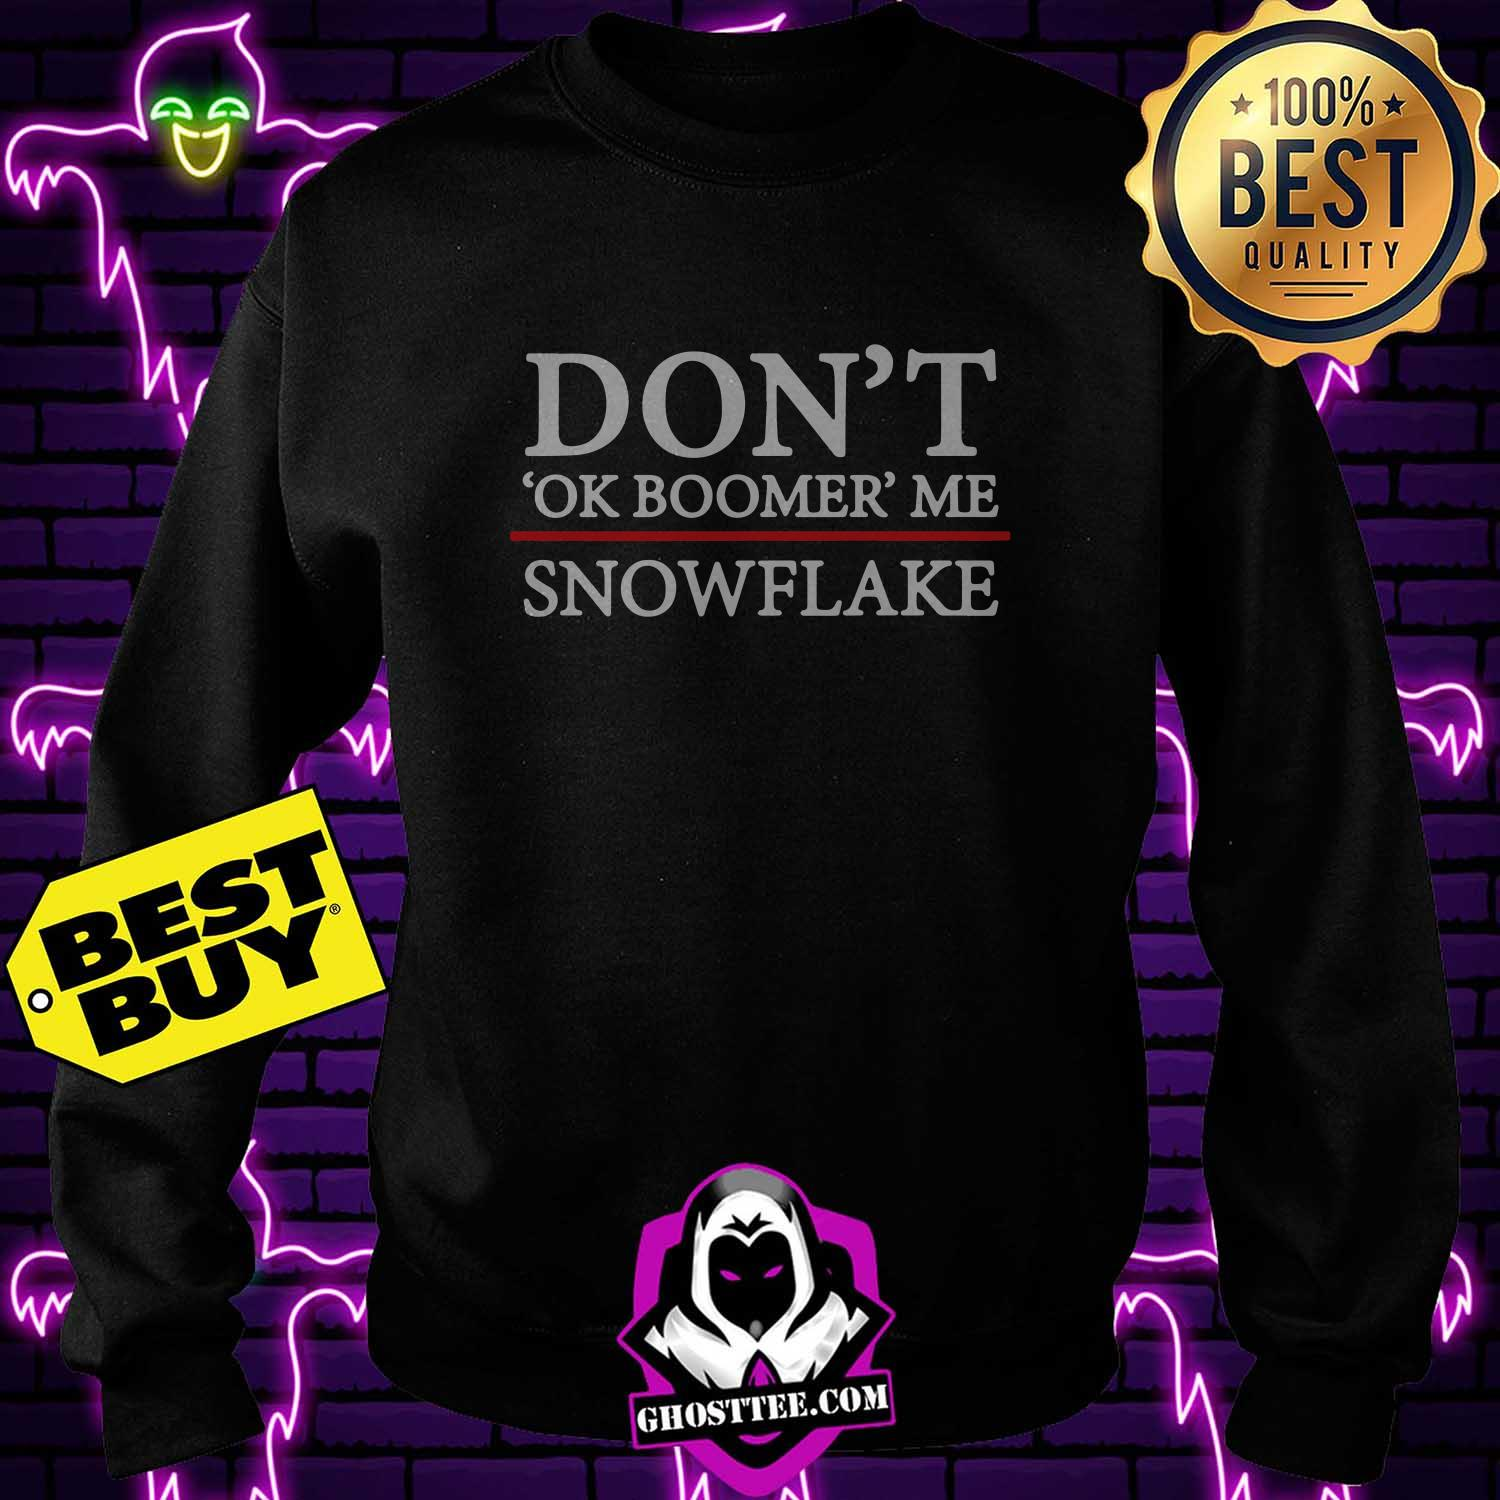 anti dont oke boomer me snowflake sweatshirt - Anti don't oke boomer me snowflake shirt